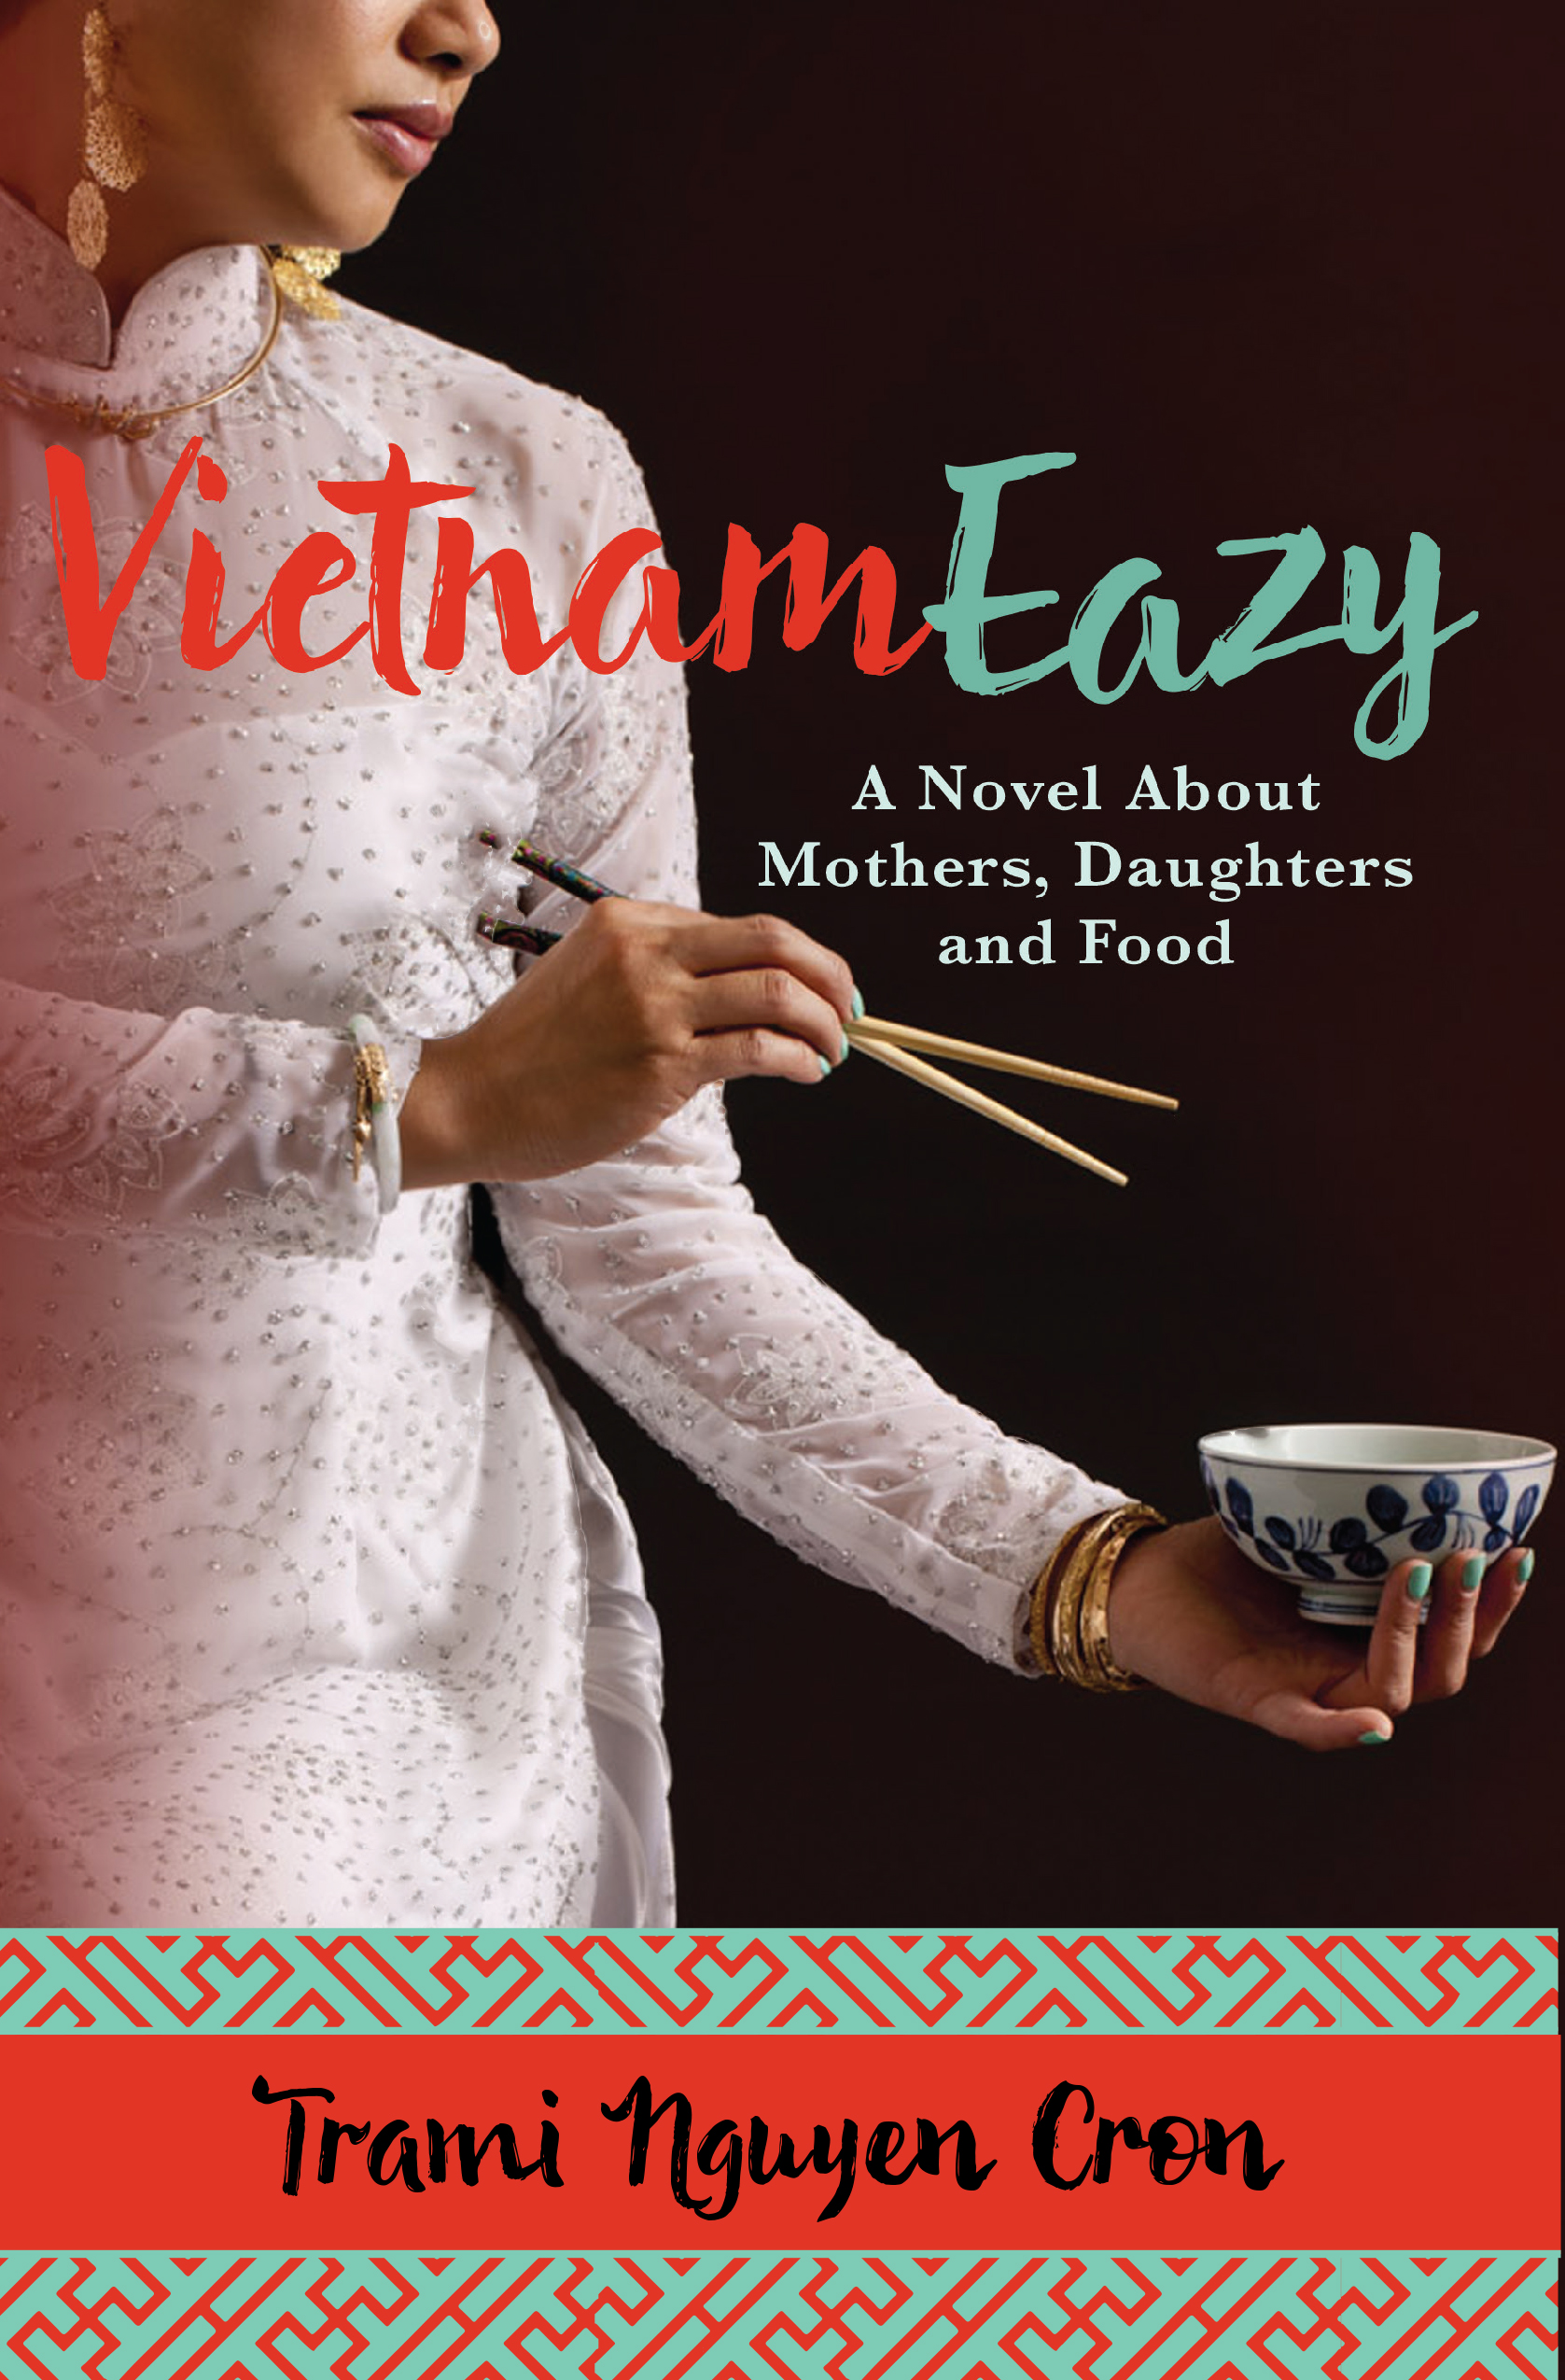 VietnamEazy a novel about Mothers Daughers and Food